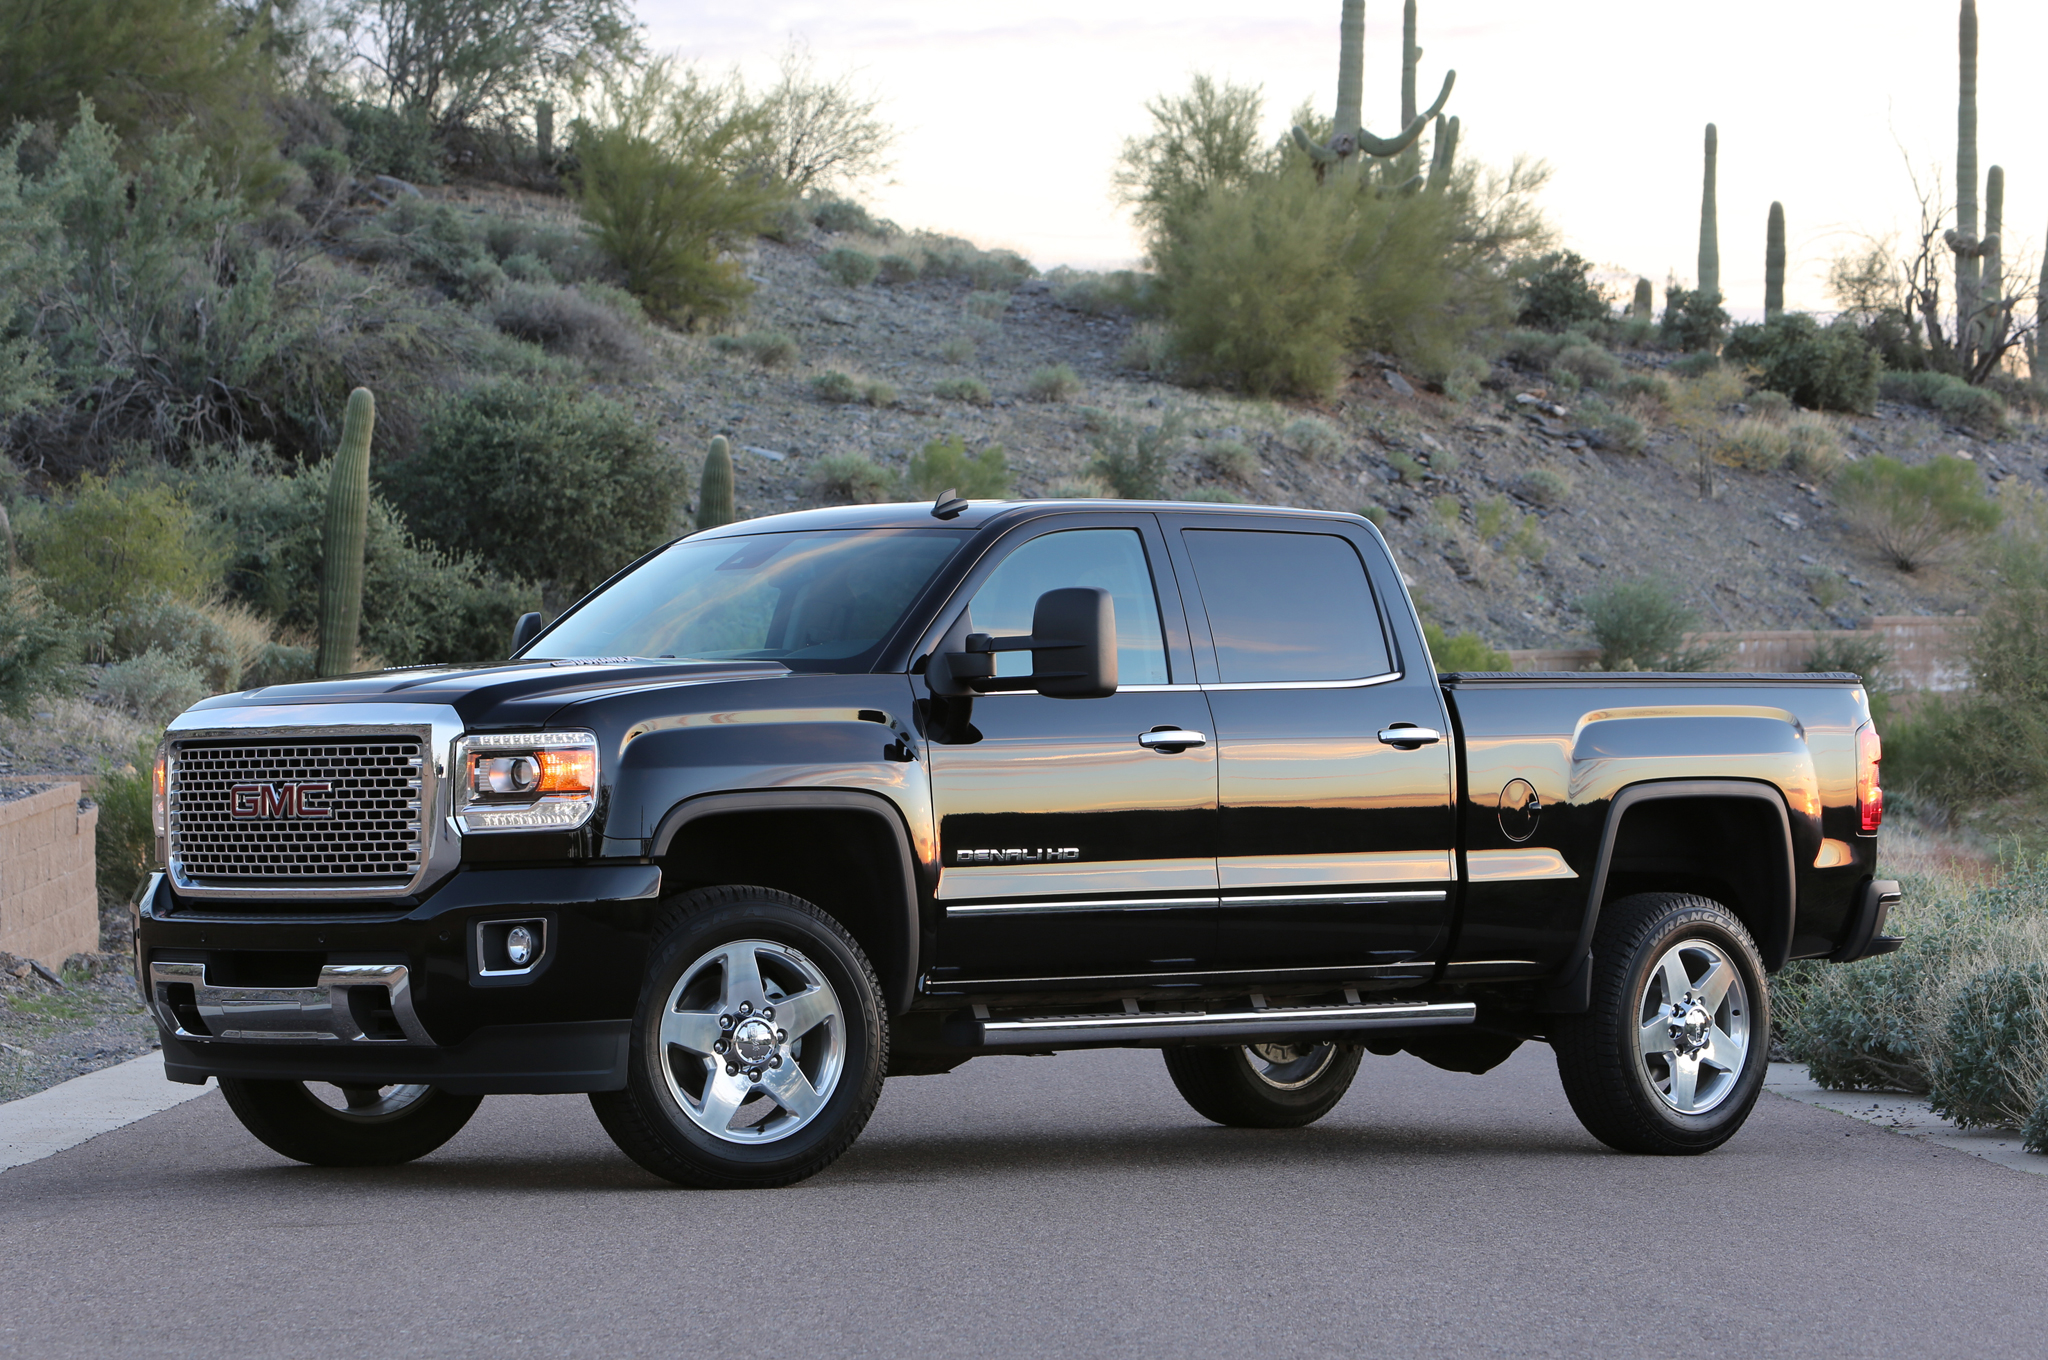 GMC Sierra 2500hd #23